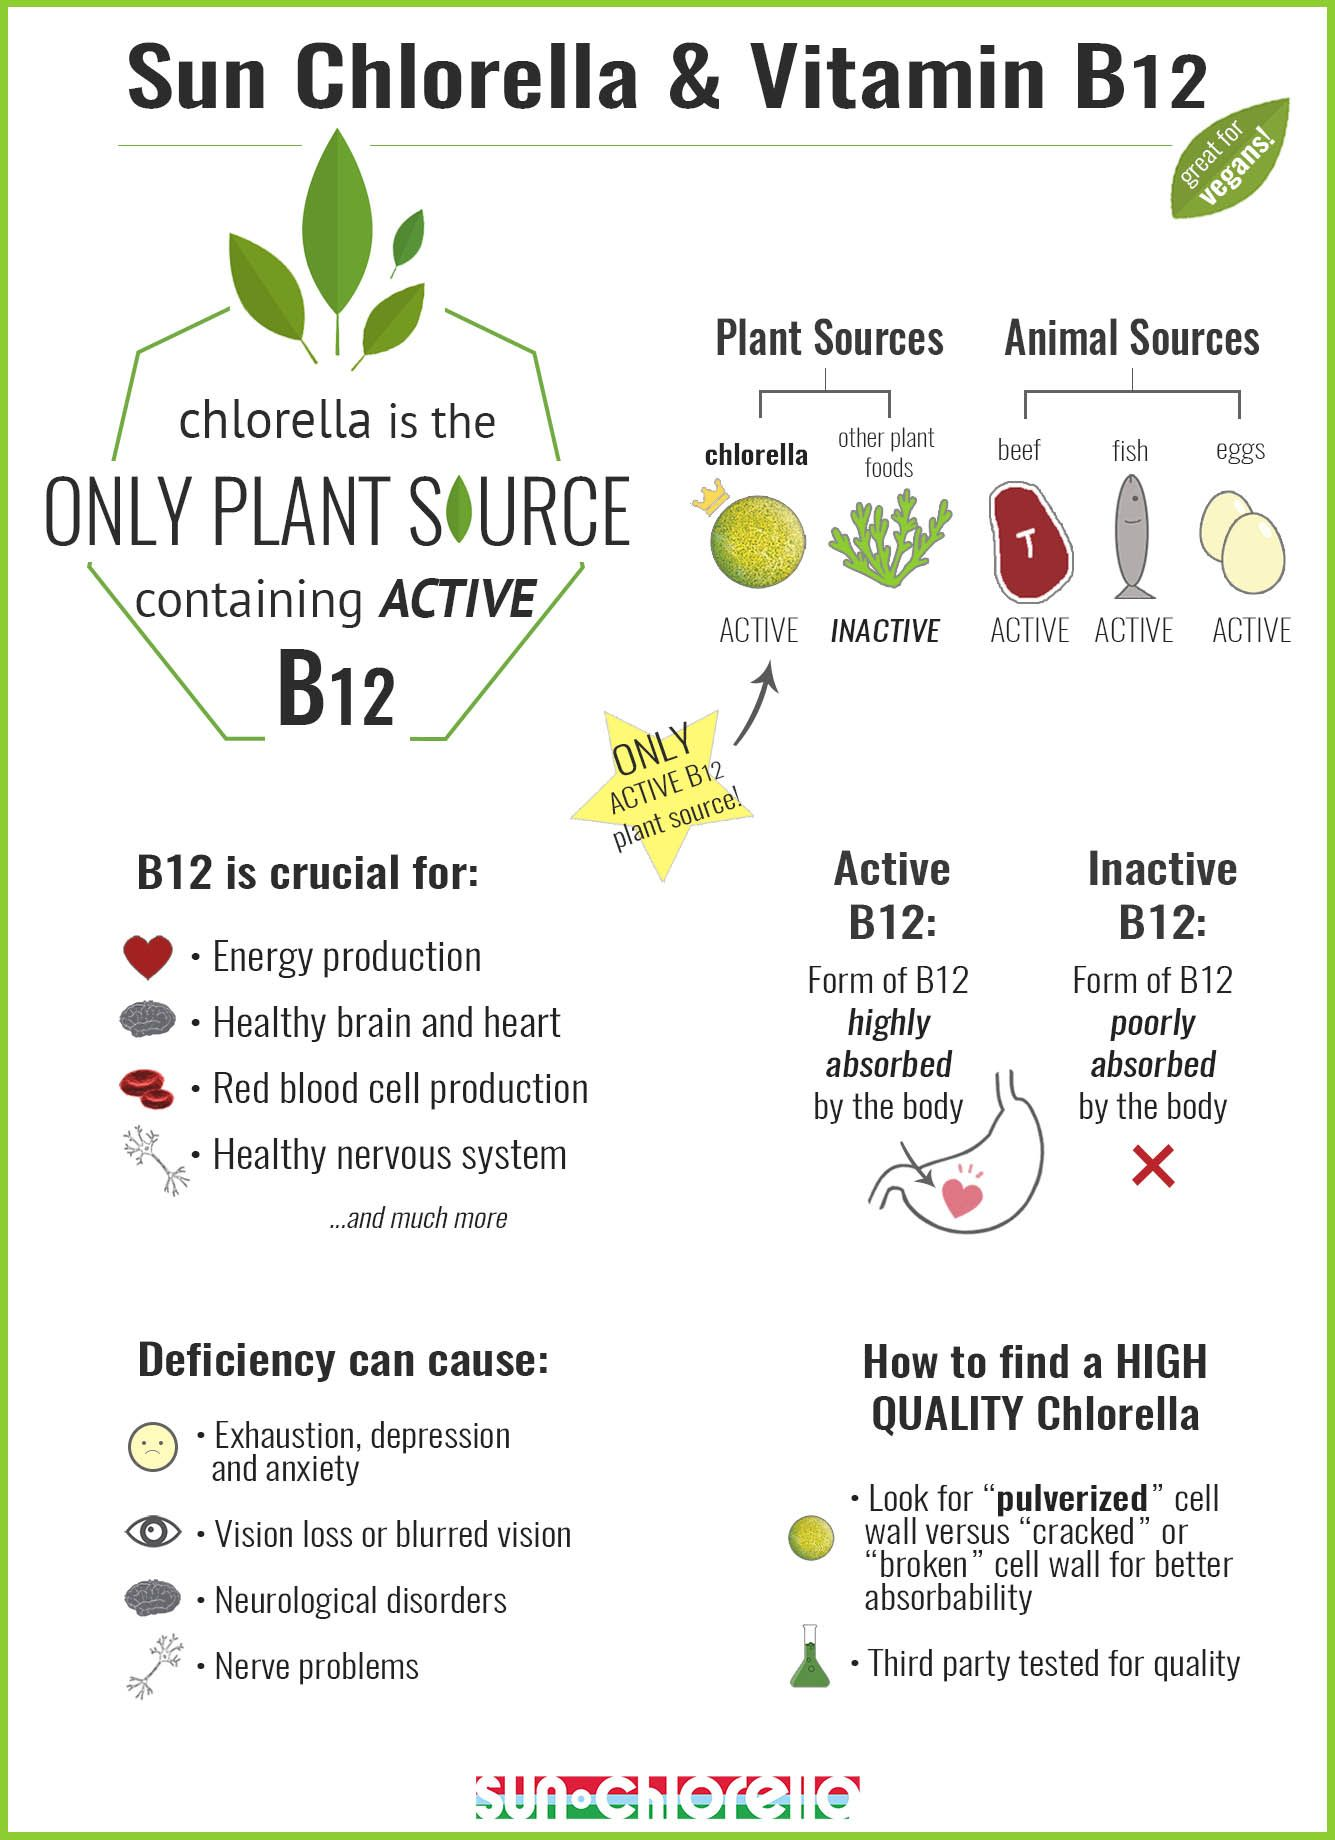 Sun Chlorella is an excellent source of Vitamin B12, great